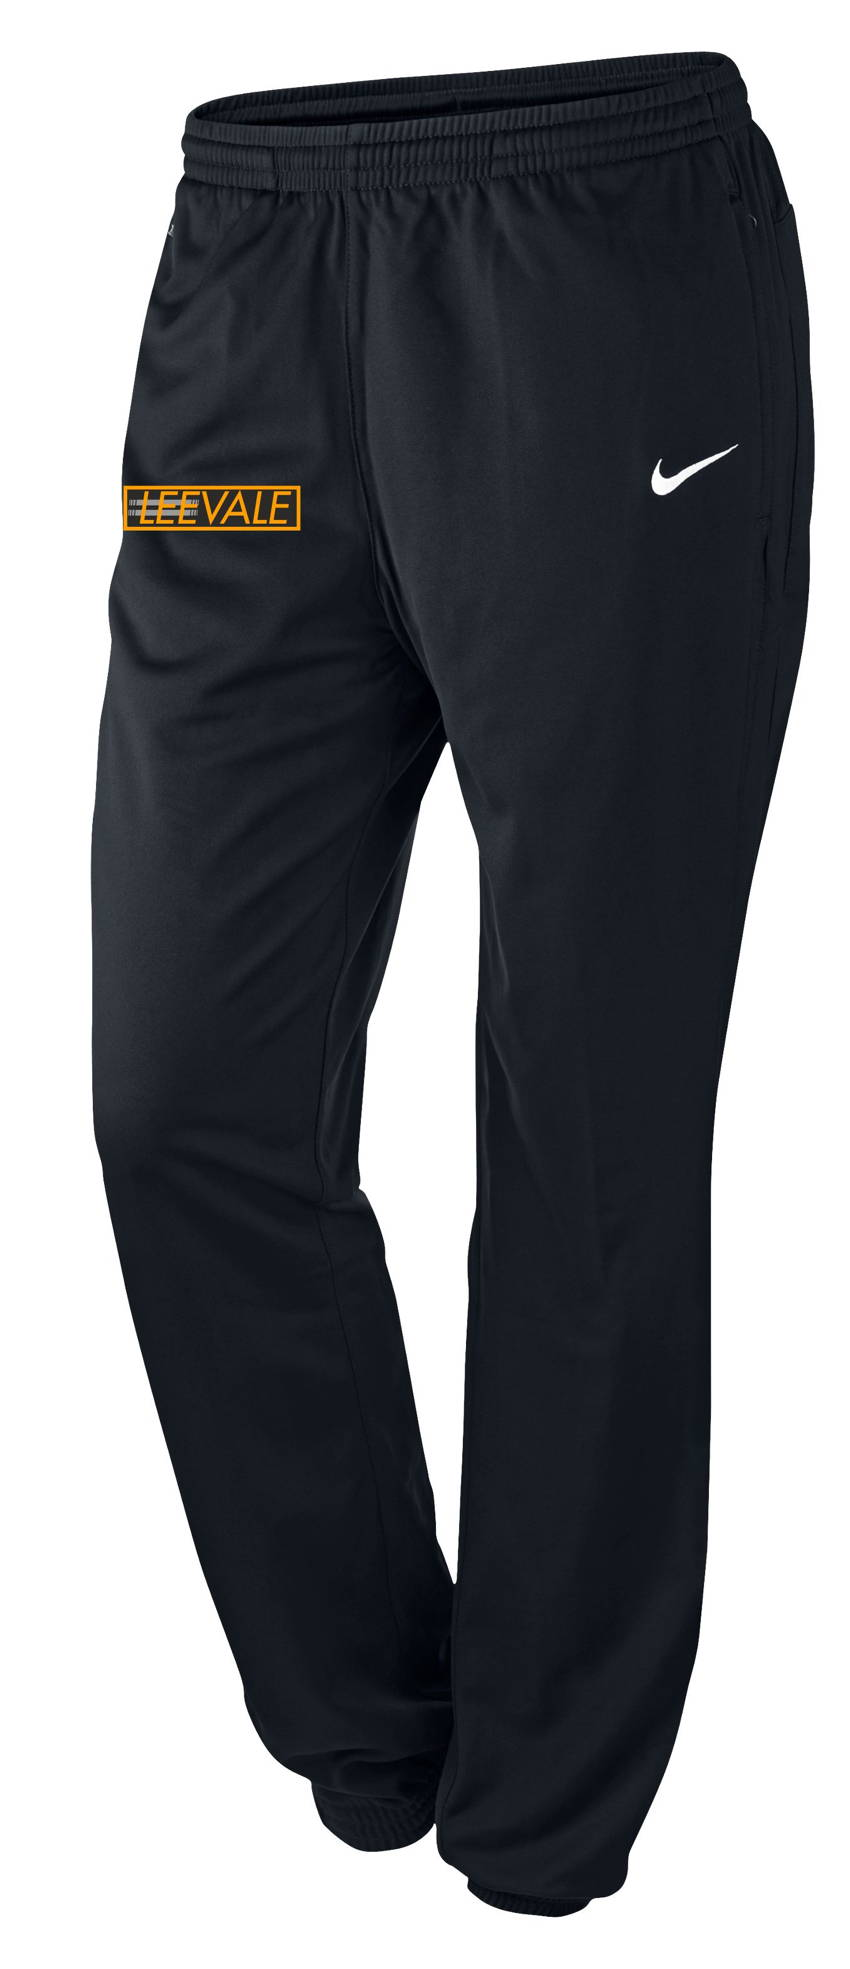 Libero Women's Knit Pant